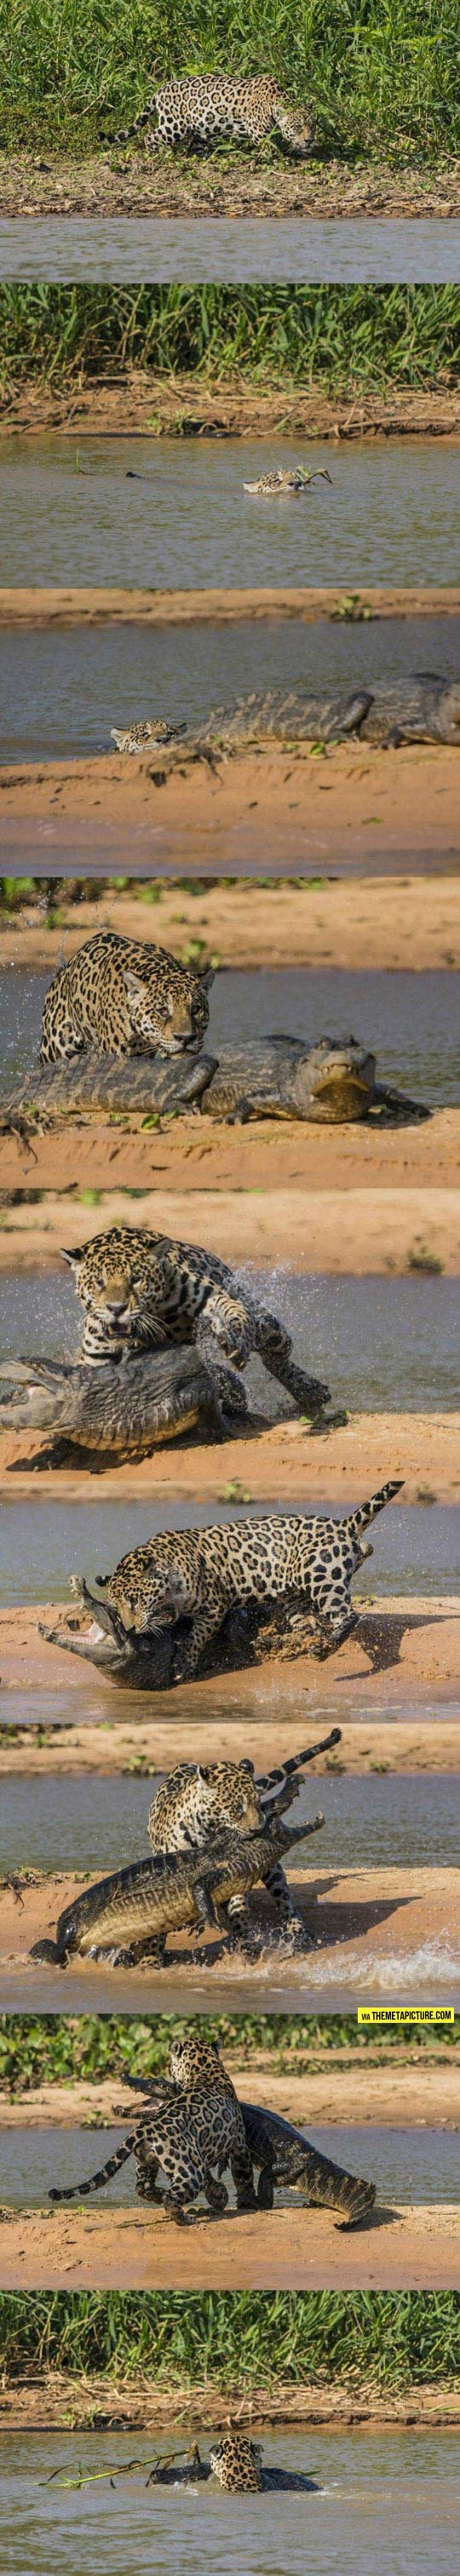 cool-leopard-eating-crocodile-river